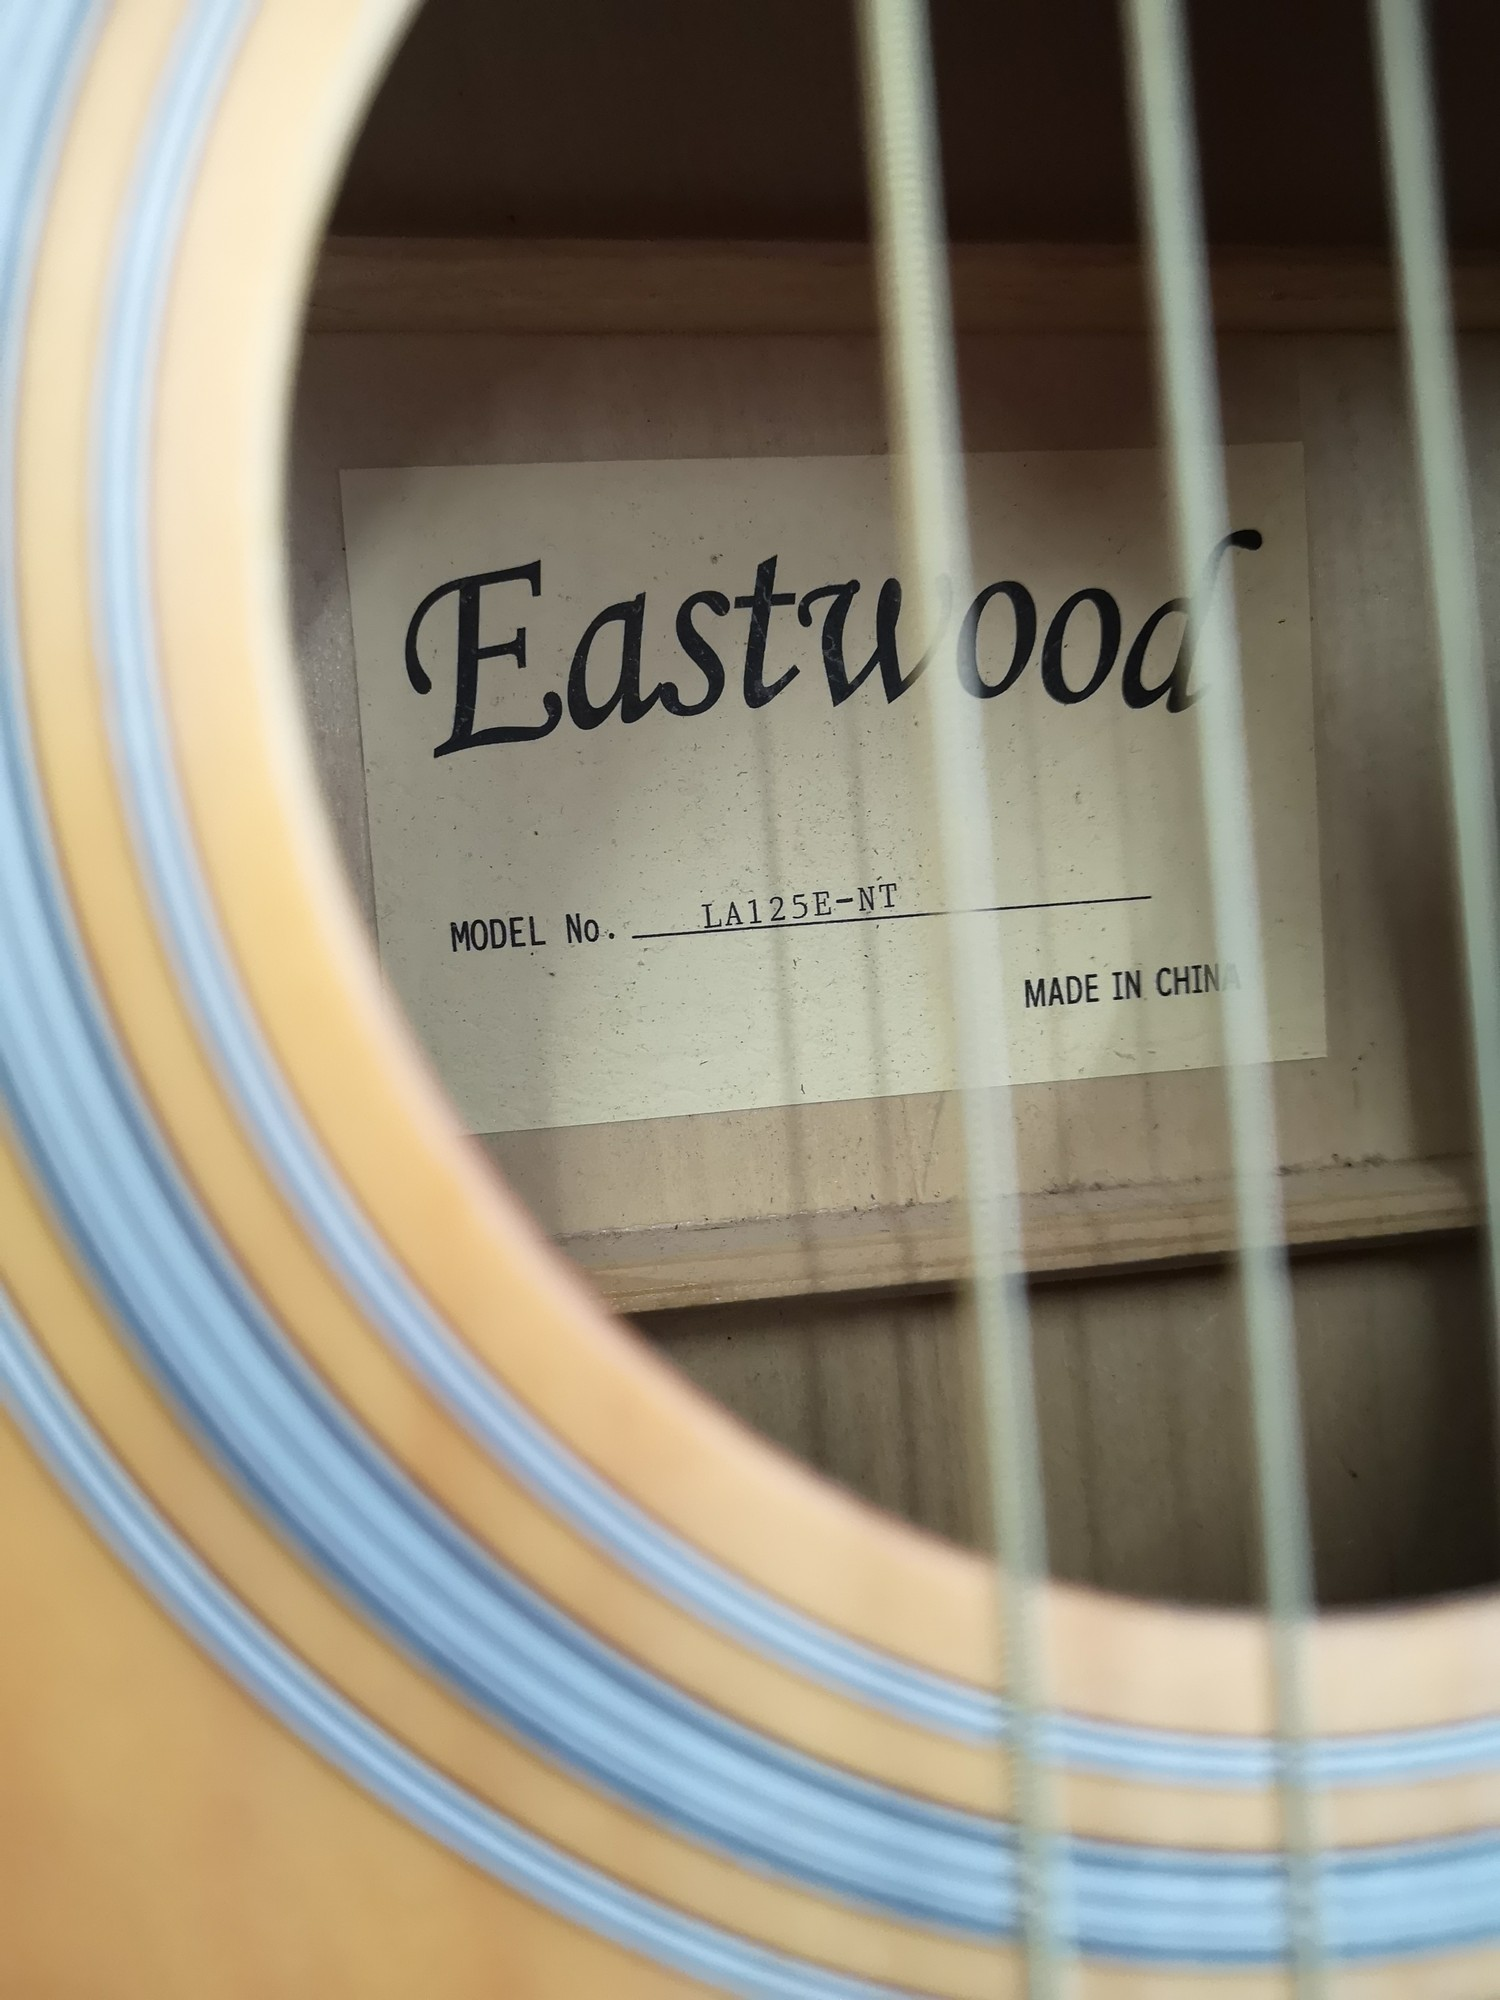 Eastwood acoustic guitar. - Image 3 of 3